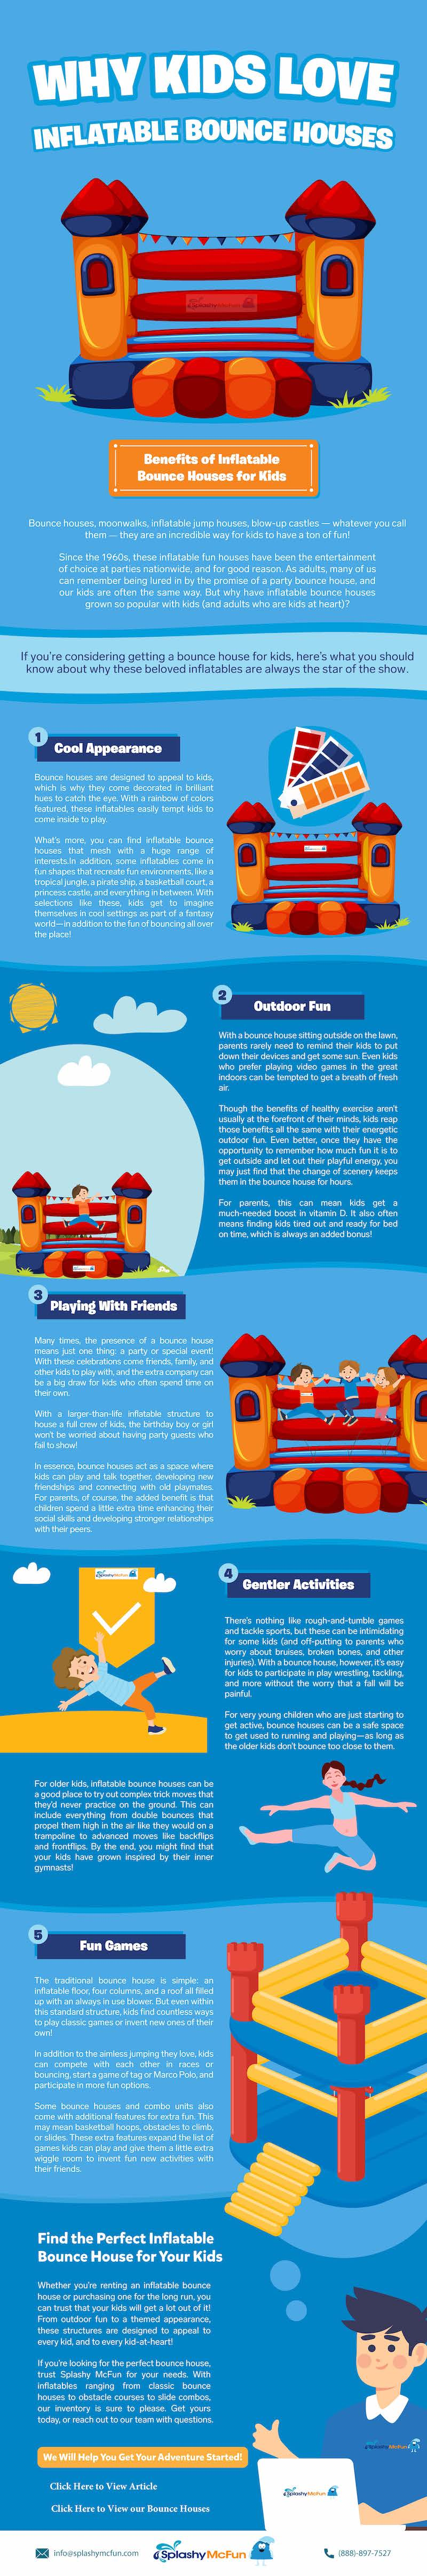 Why Kids Love Inflatable Bounce Houses Infographic